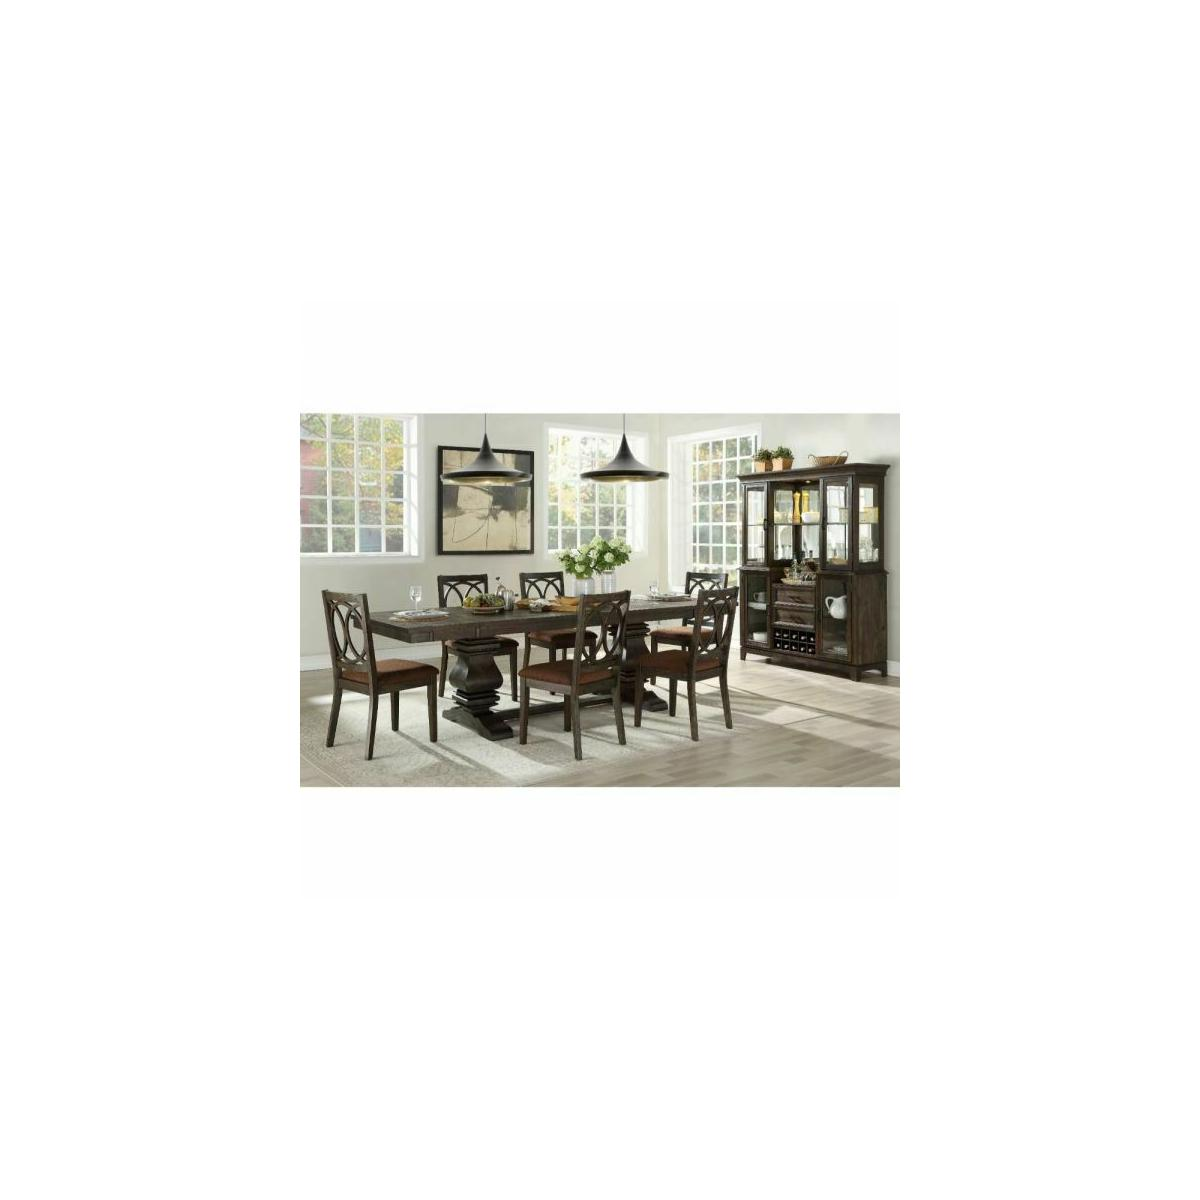 ACME Jameson Dining Table - 62320 - Espresso